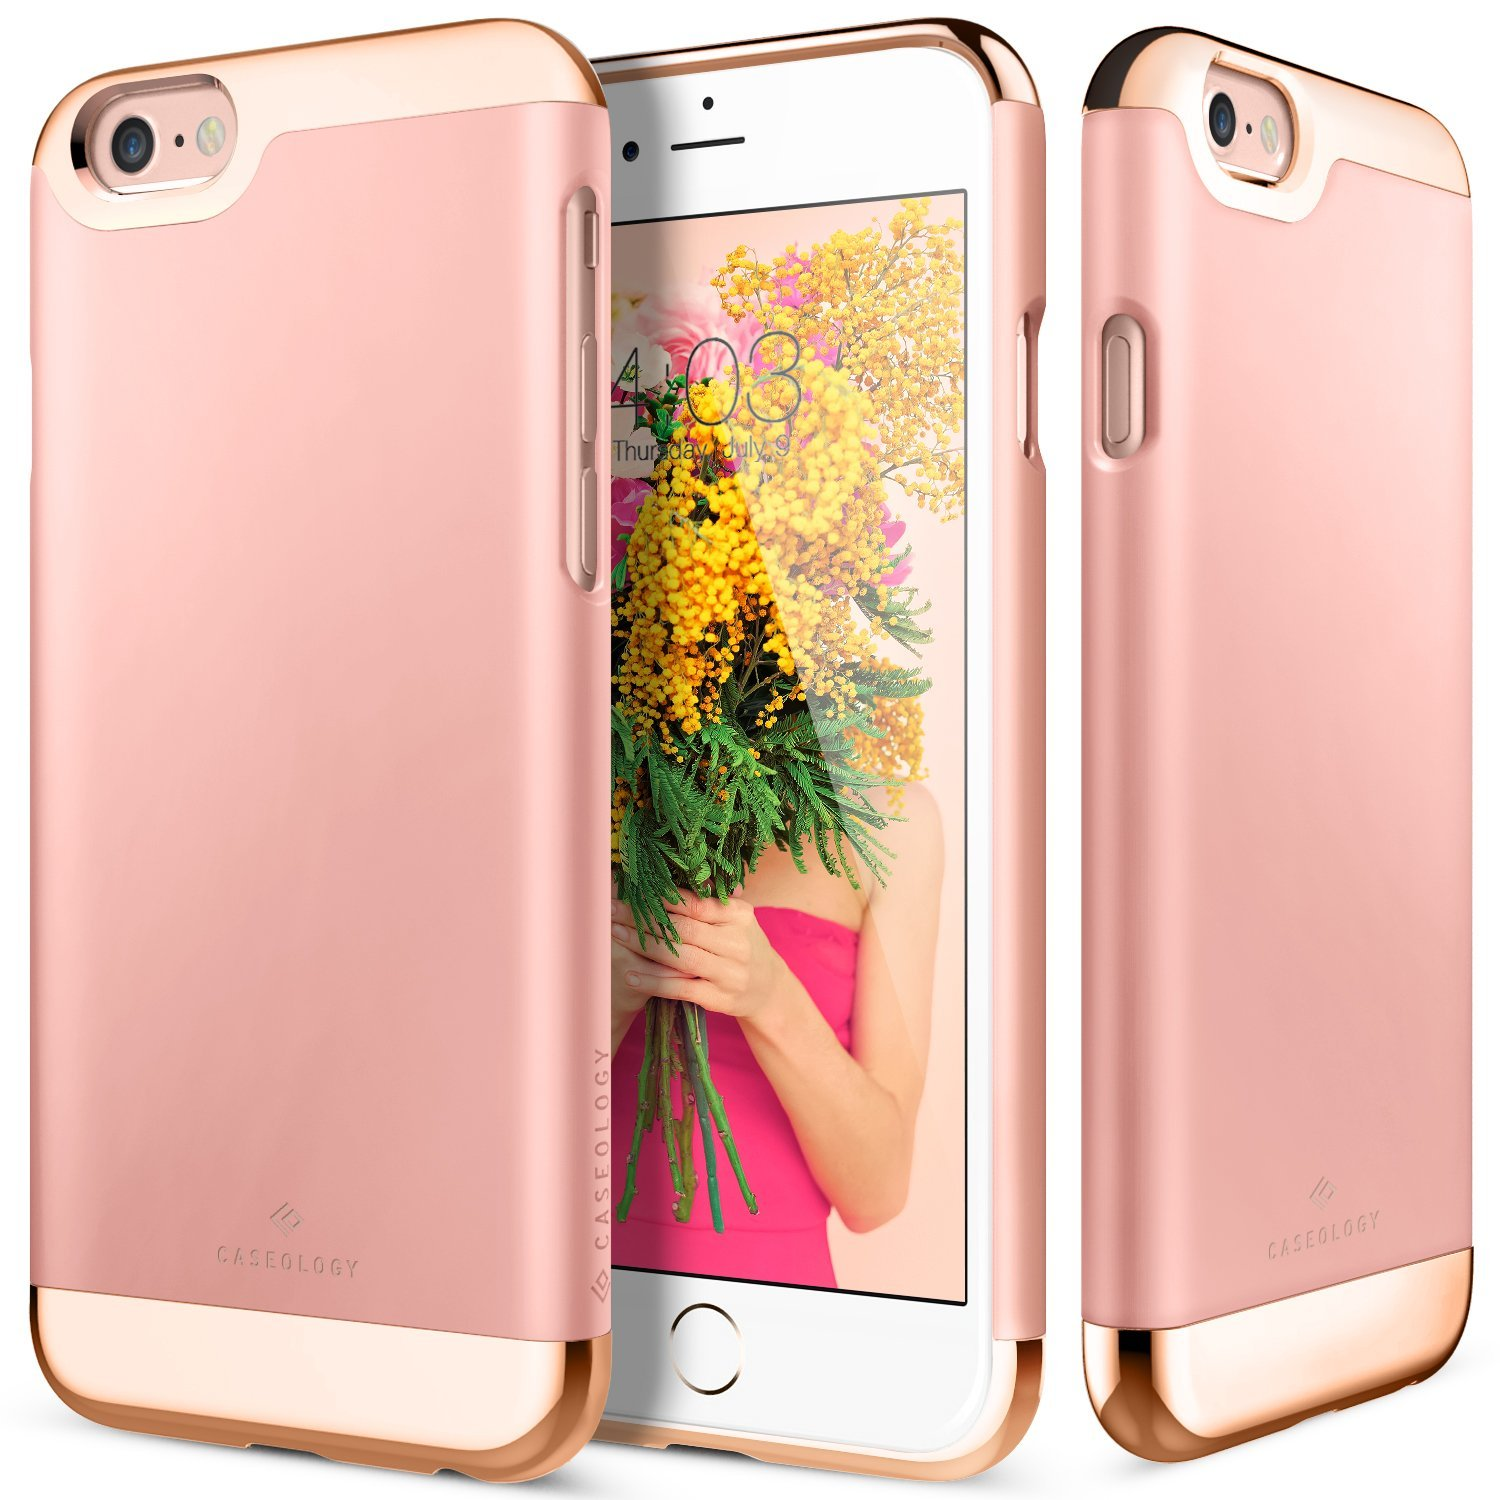 Apple iPhone 6/6S Case, Caseology [Savoy Series] Chrome / Microfiber Slider Case [Rose Gold] [Premium Rose Gold]